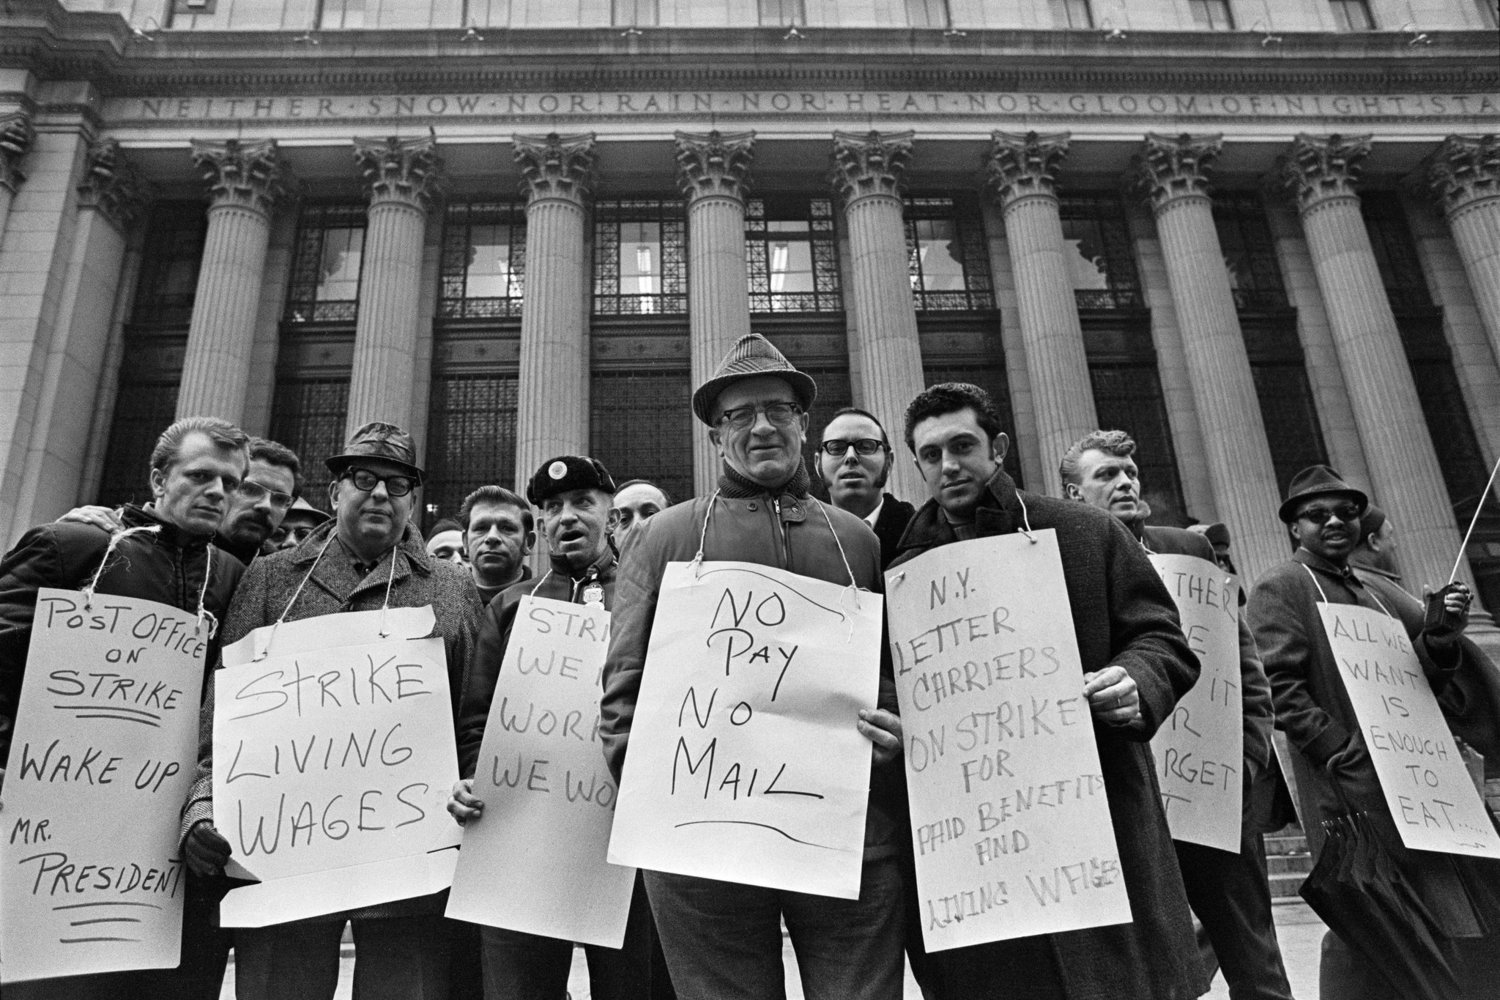 Postal workers out on an illegal strike in 1970.